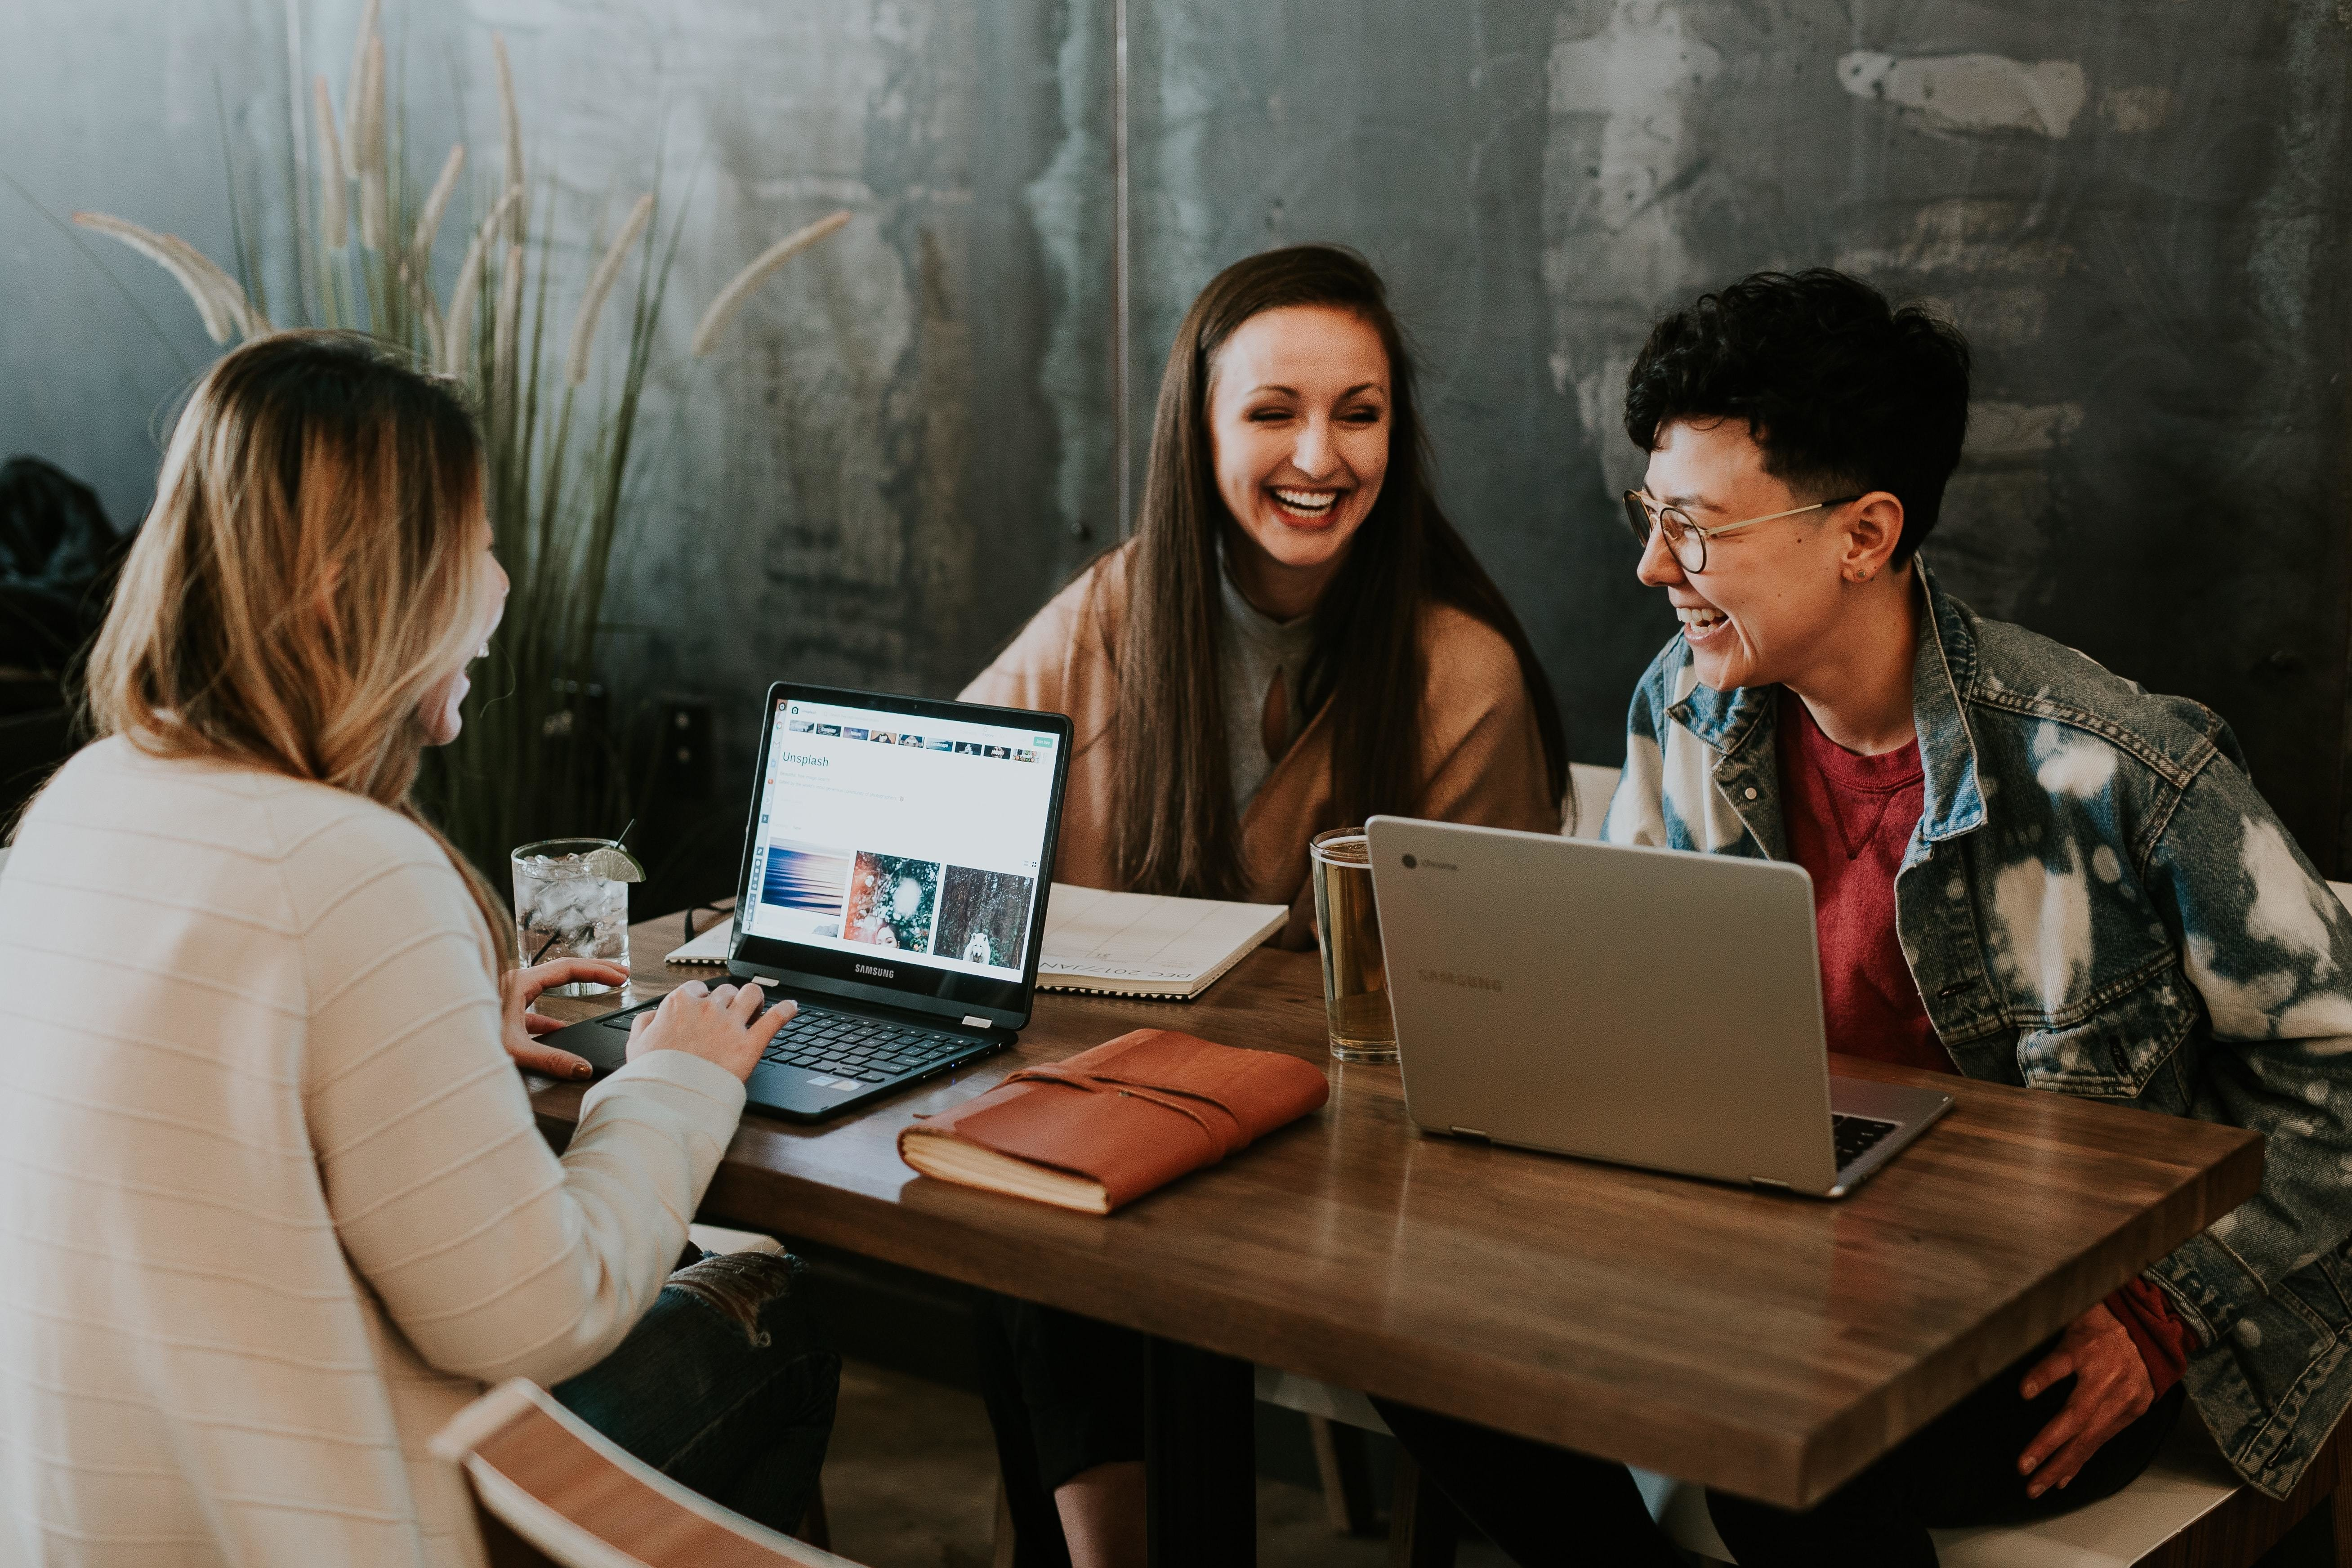 some young workers, like these ones chatting here, have expressed a need to feel respected in the workplace, which they require more than 'trendy' perks